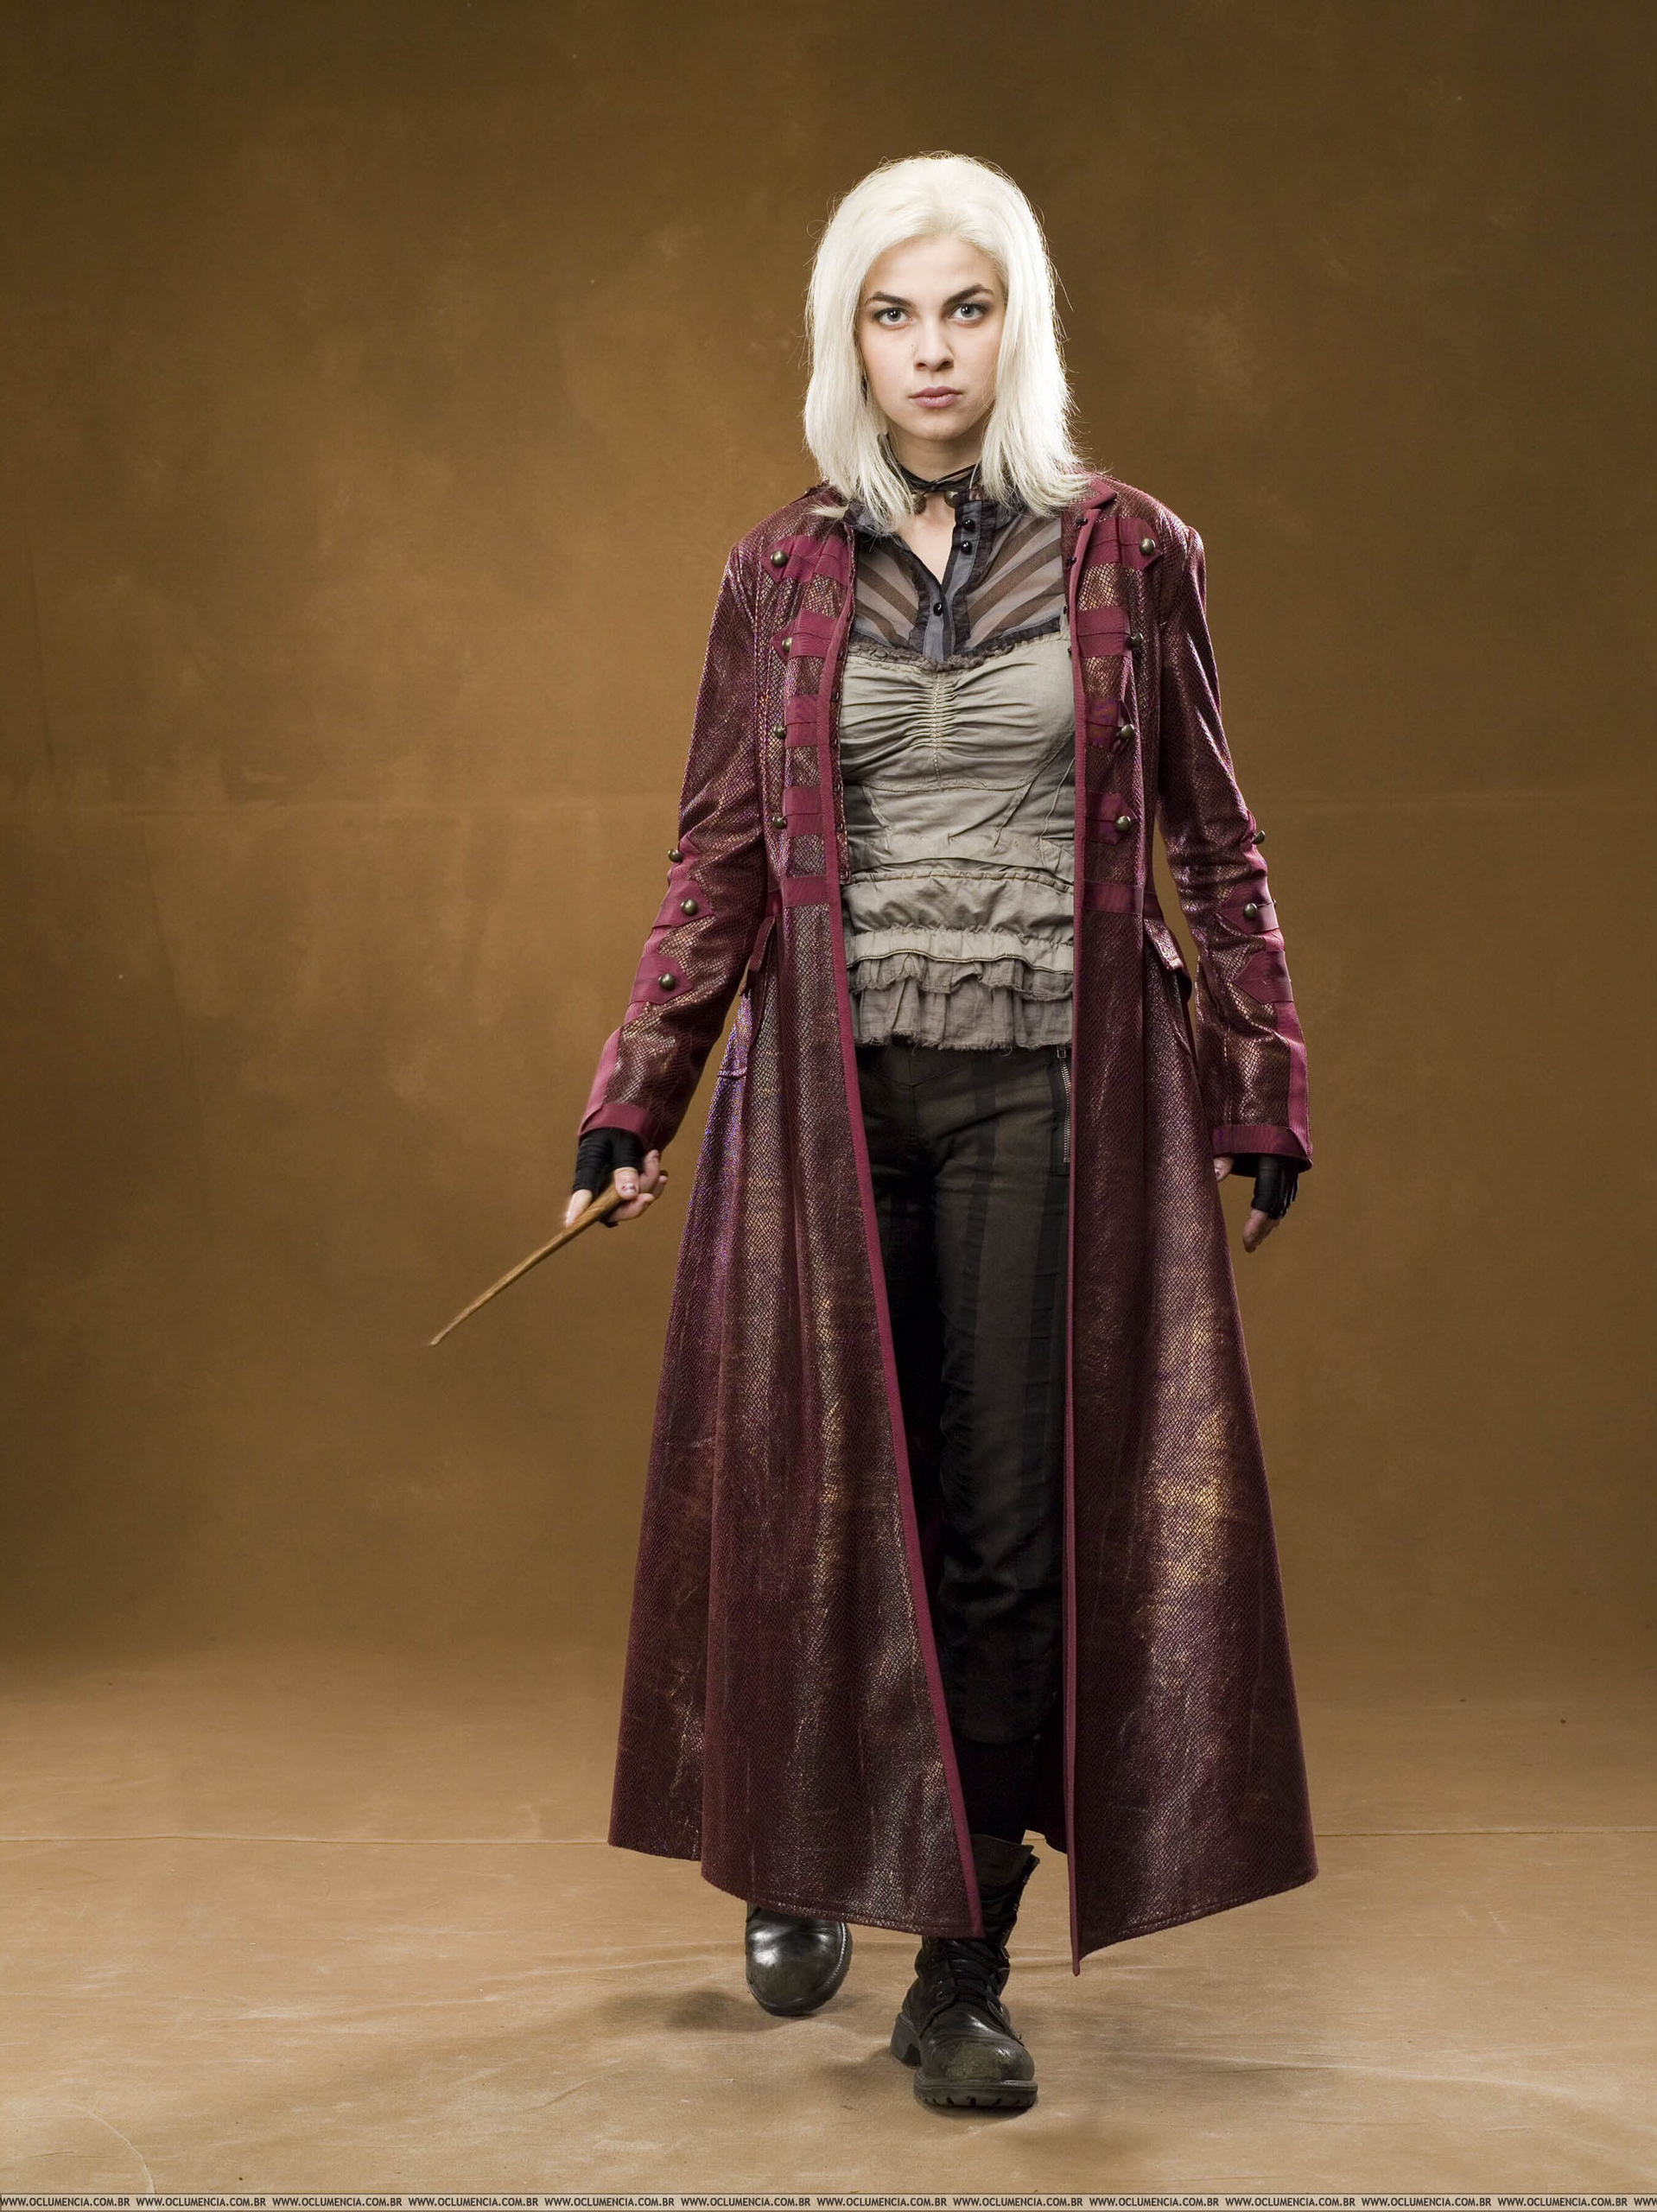 tonks in OotP [HQ]